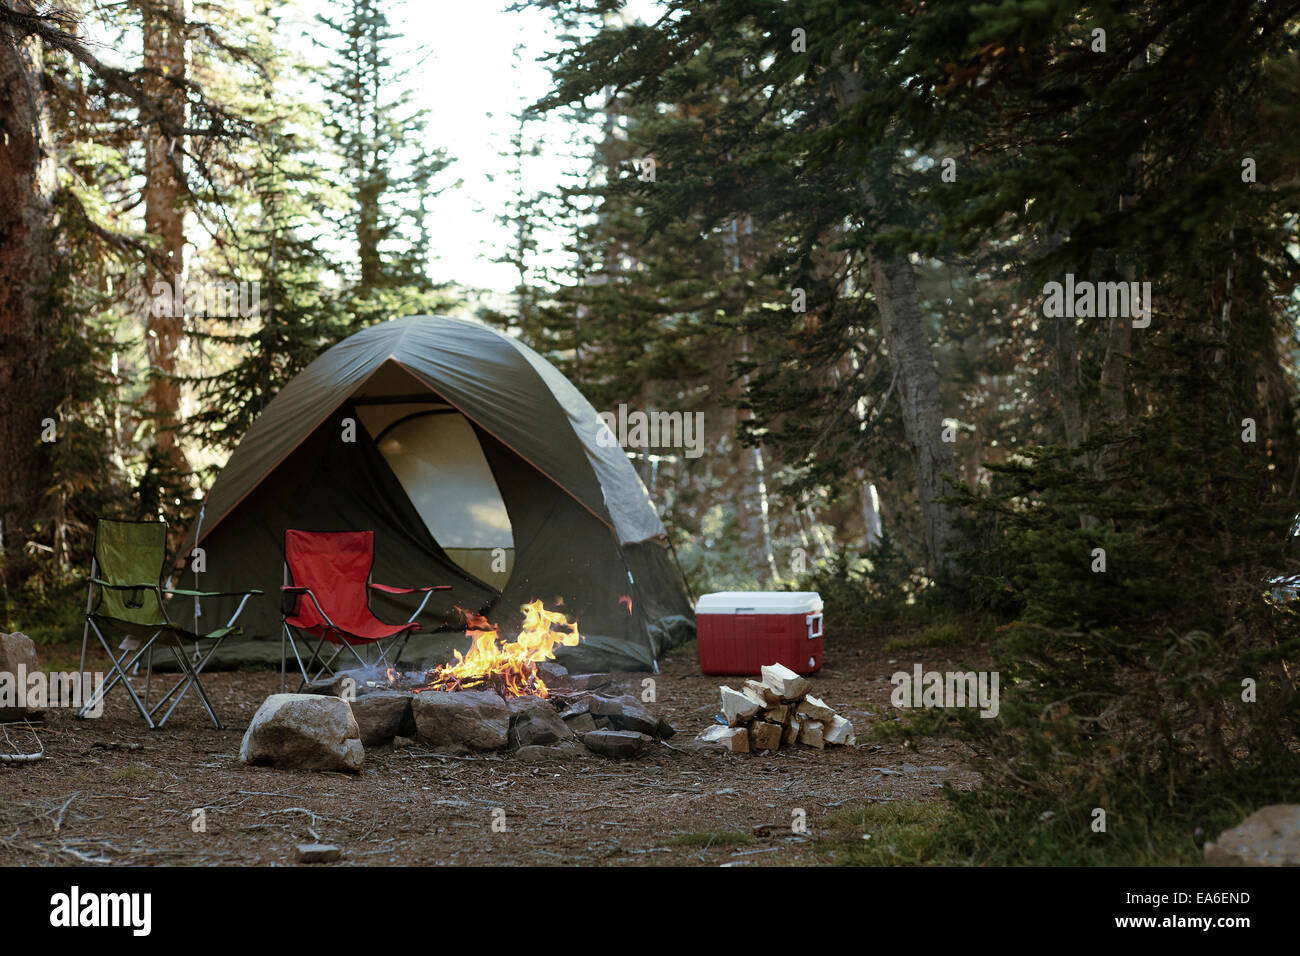 USA, Utah, Weekend Camping - Stock Image